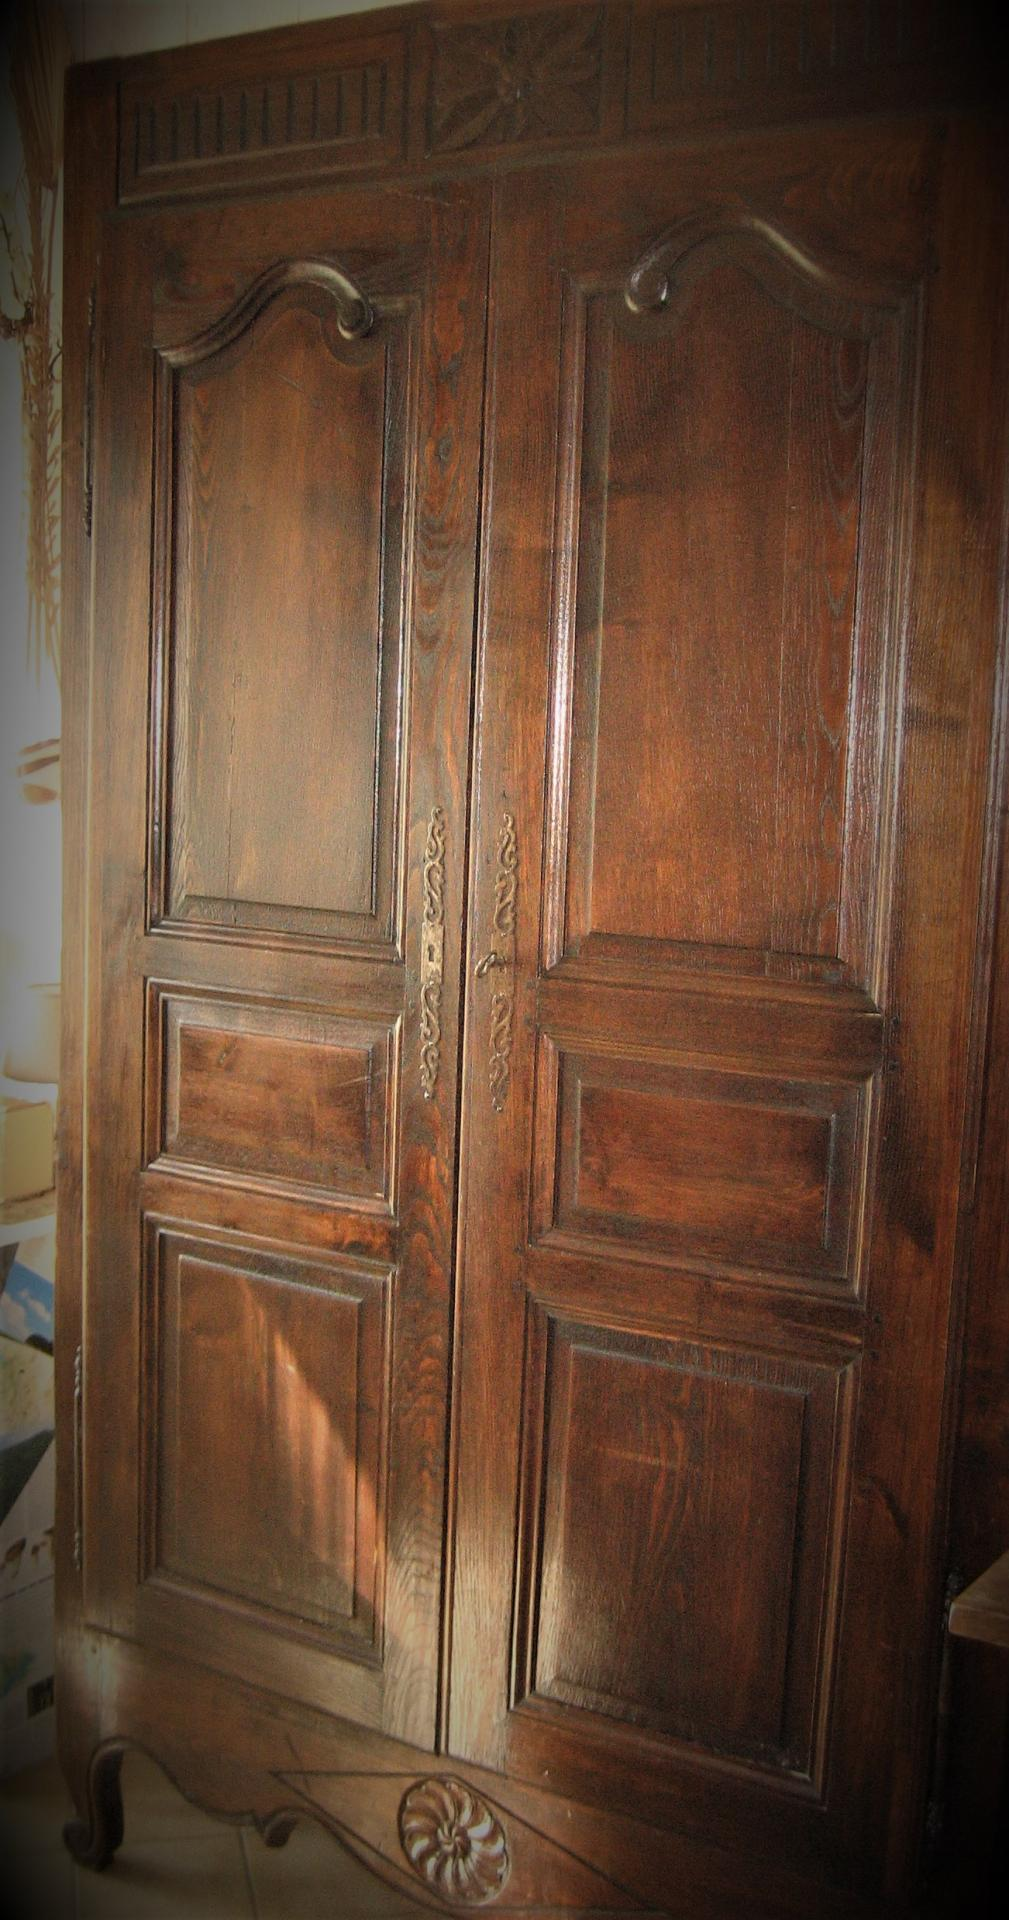 comment restaurer une armoire ancienne amazing comment restaurer une armoire ancienne with. Black Bedroom Furniture Sets. Home Design Ideas